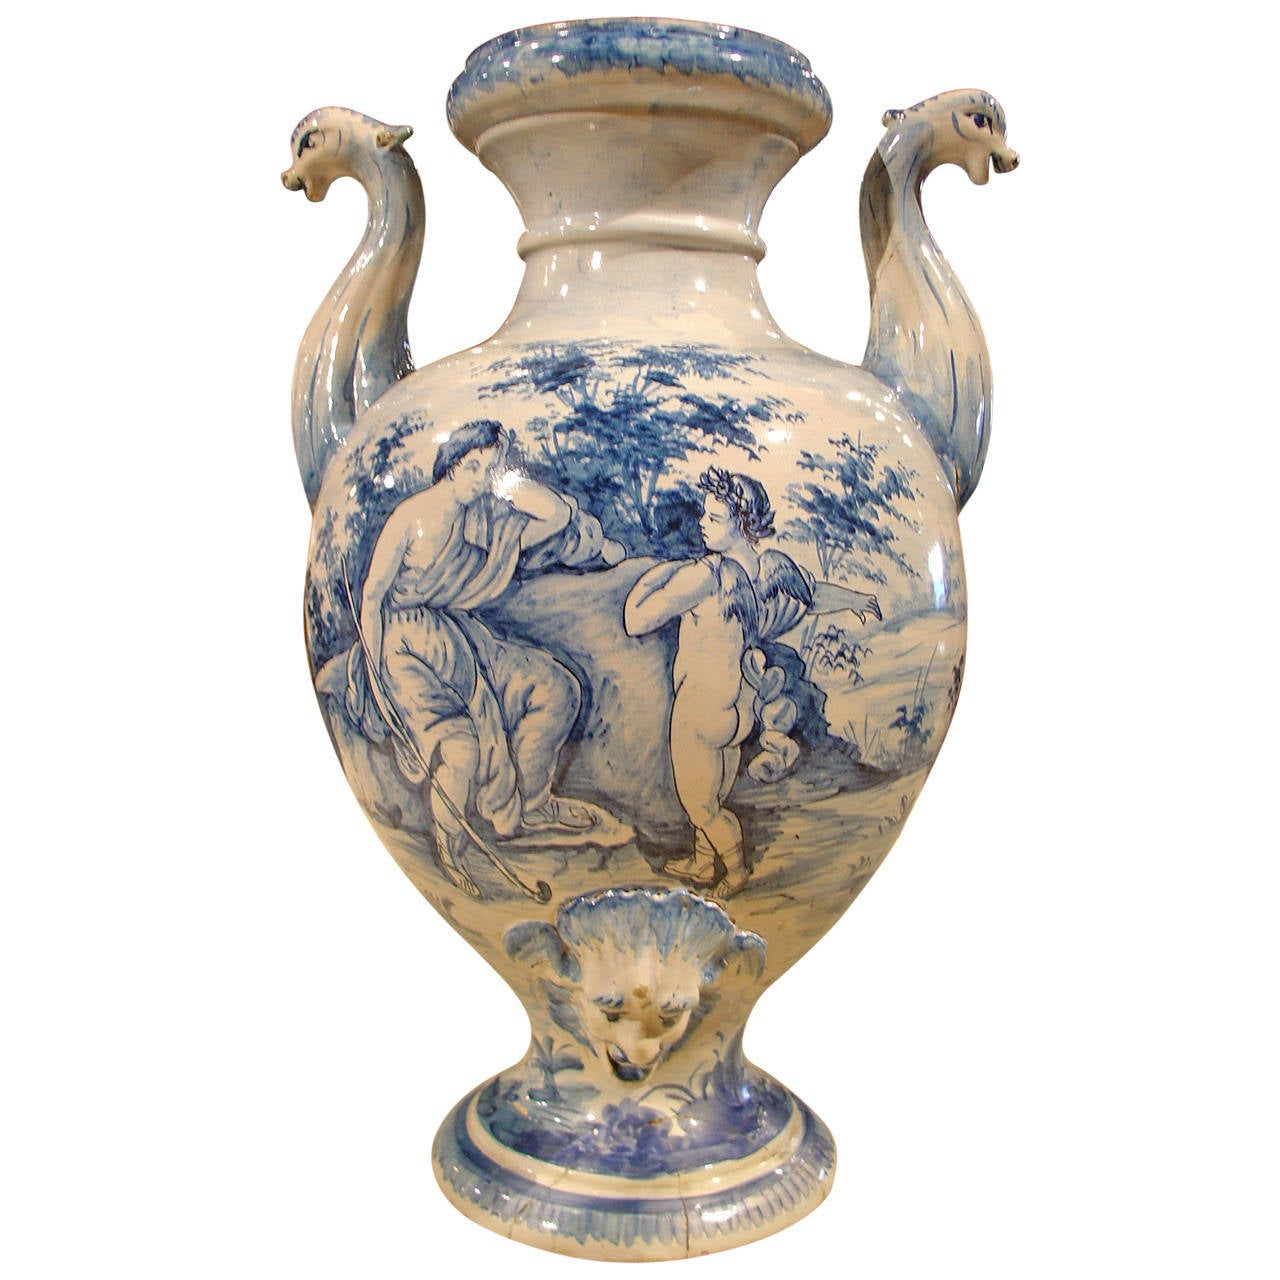 Antique Savona Italian Faience Urn At 1stdibs